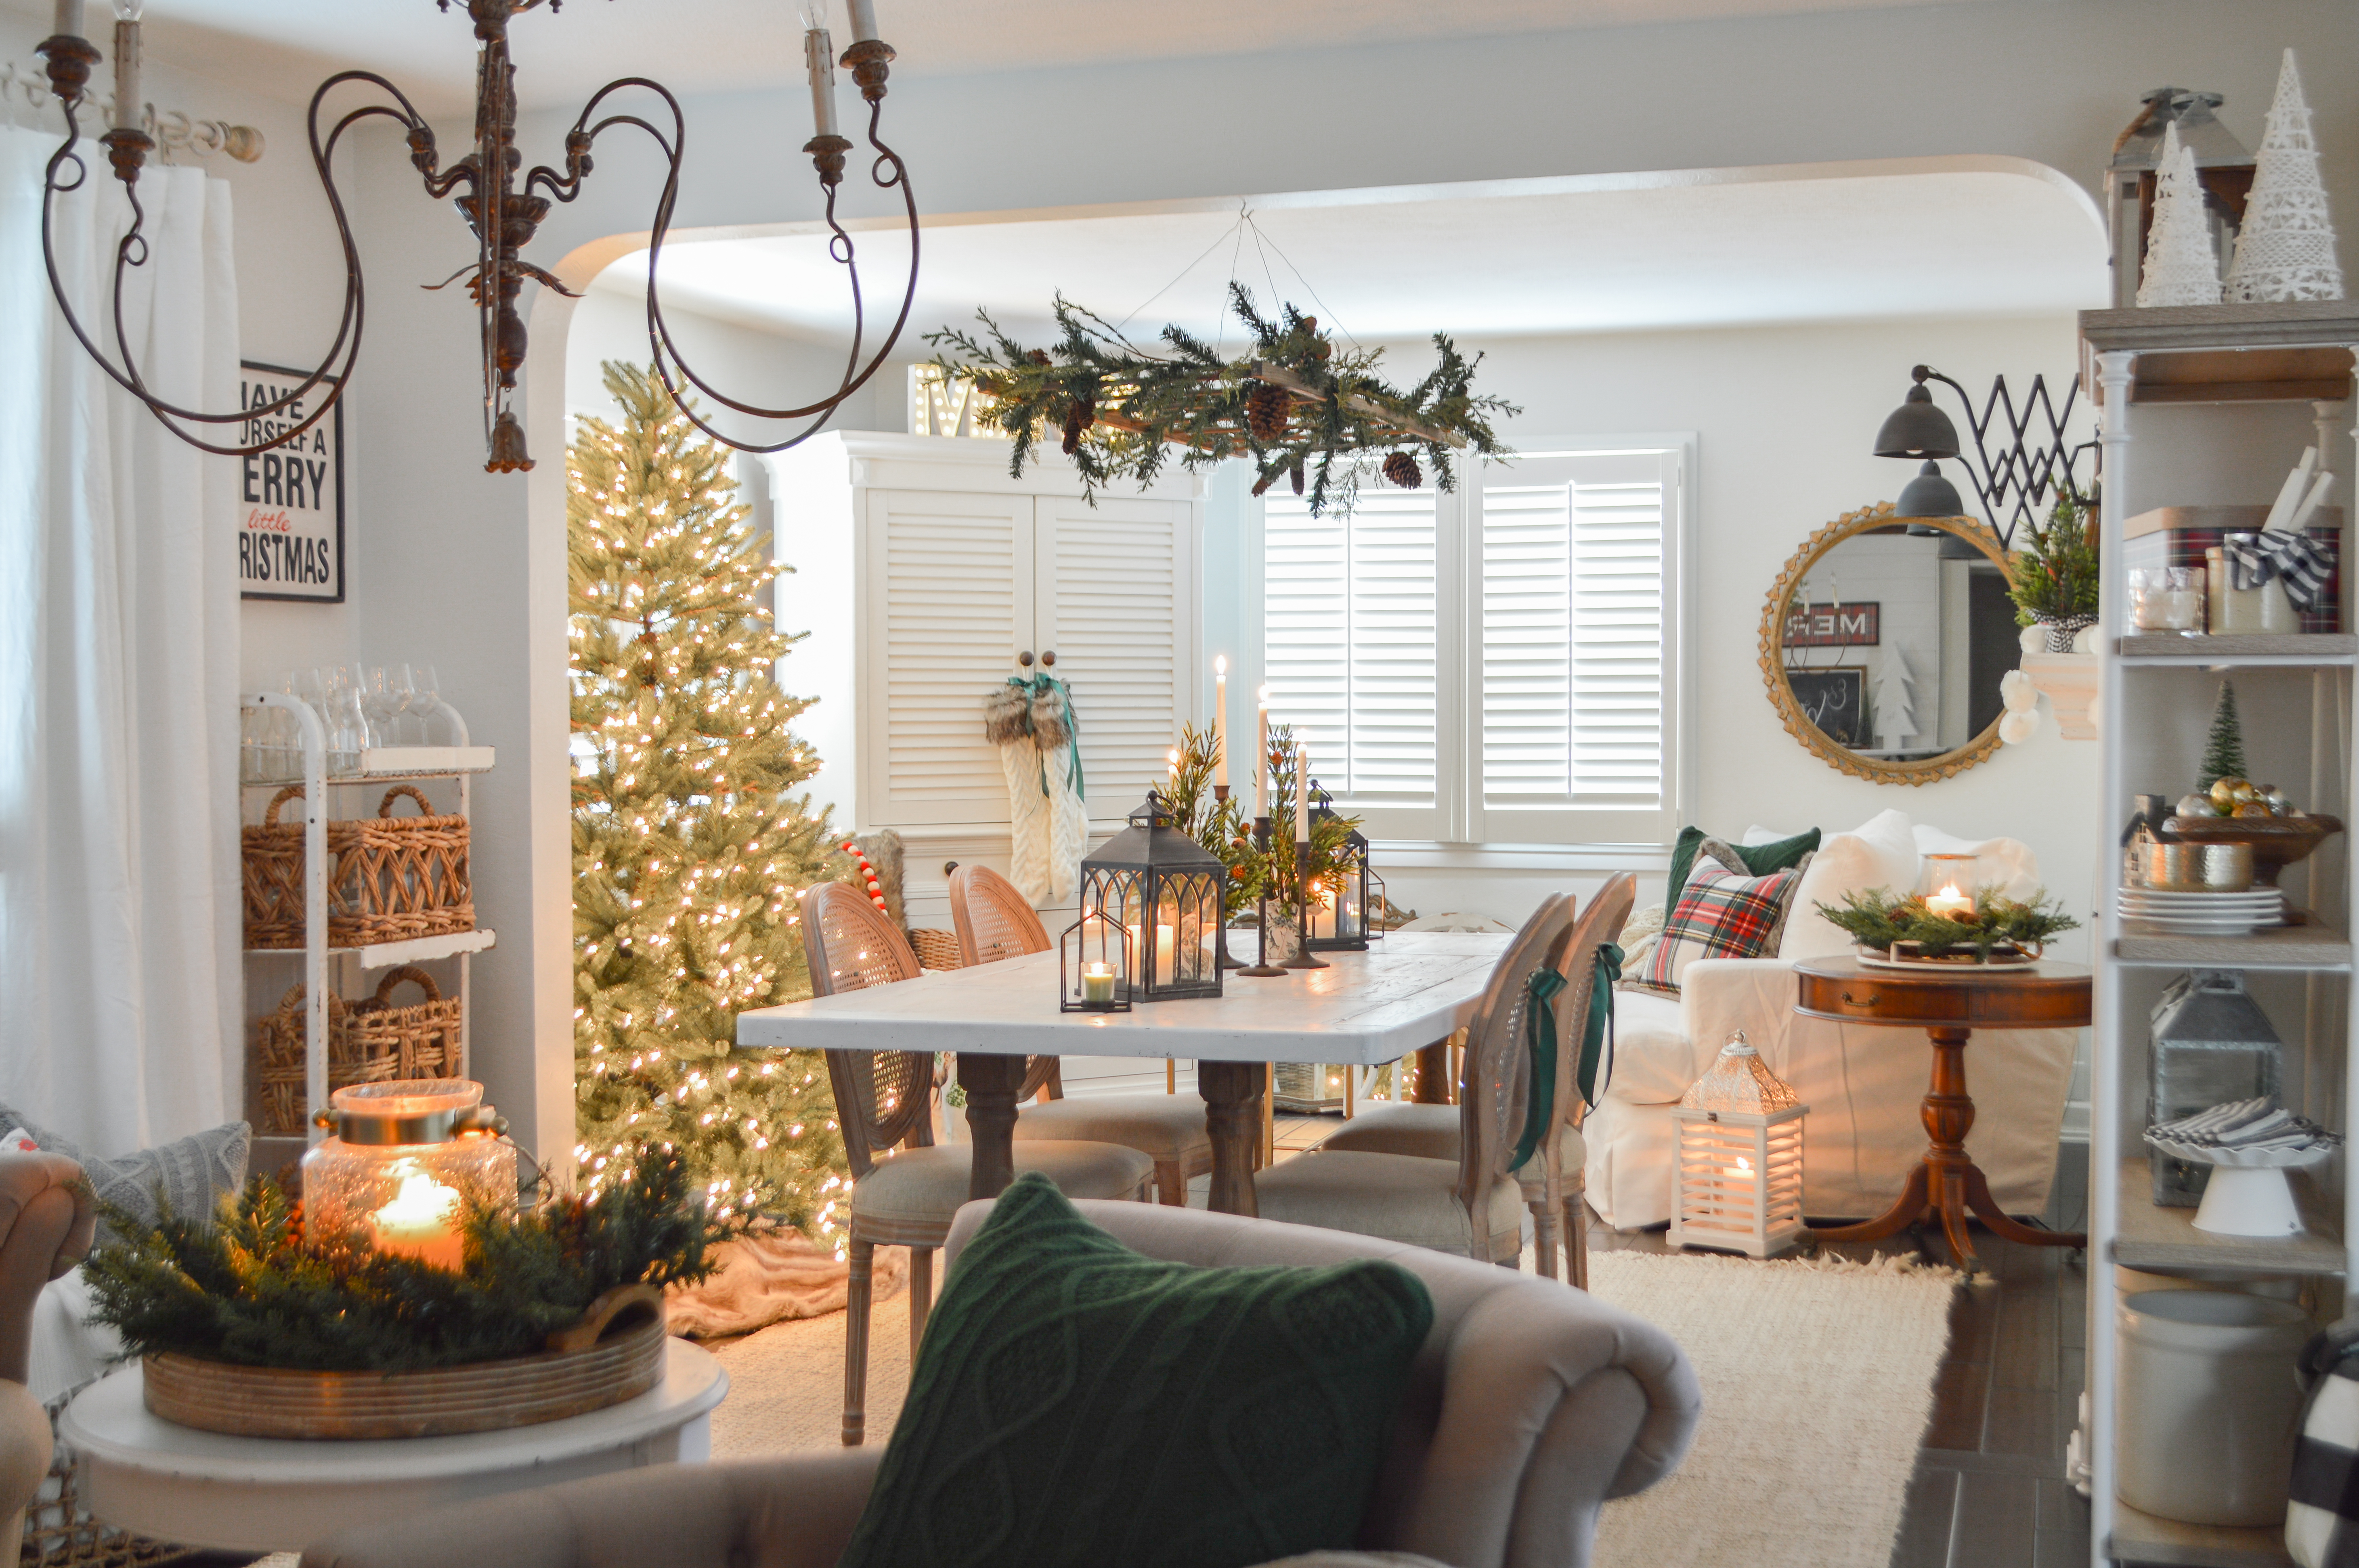 Holiday Housewalk Merry Christmas Home Tour - Cozy Fireplace seating, button tufted accent chairs, bar cart, vintage decor, buffalo check throw. #holidayhousewalk #christmashometour #cozychristmas #cottagechristmas #farmhousechristmas